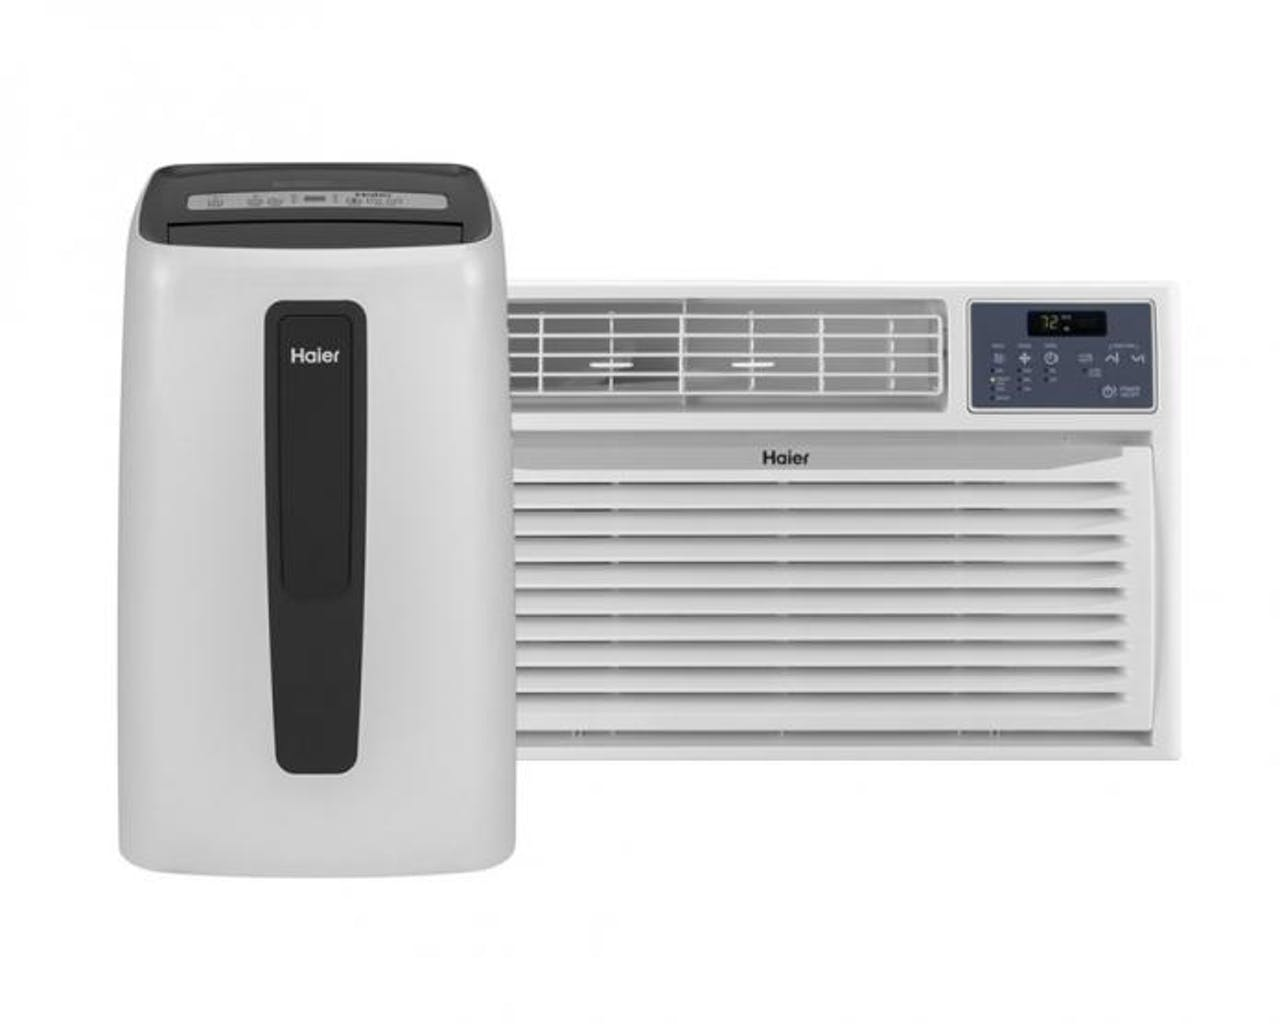 Product support photo of a Haier portable air conditioner and window air conditioner